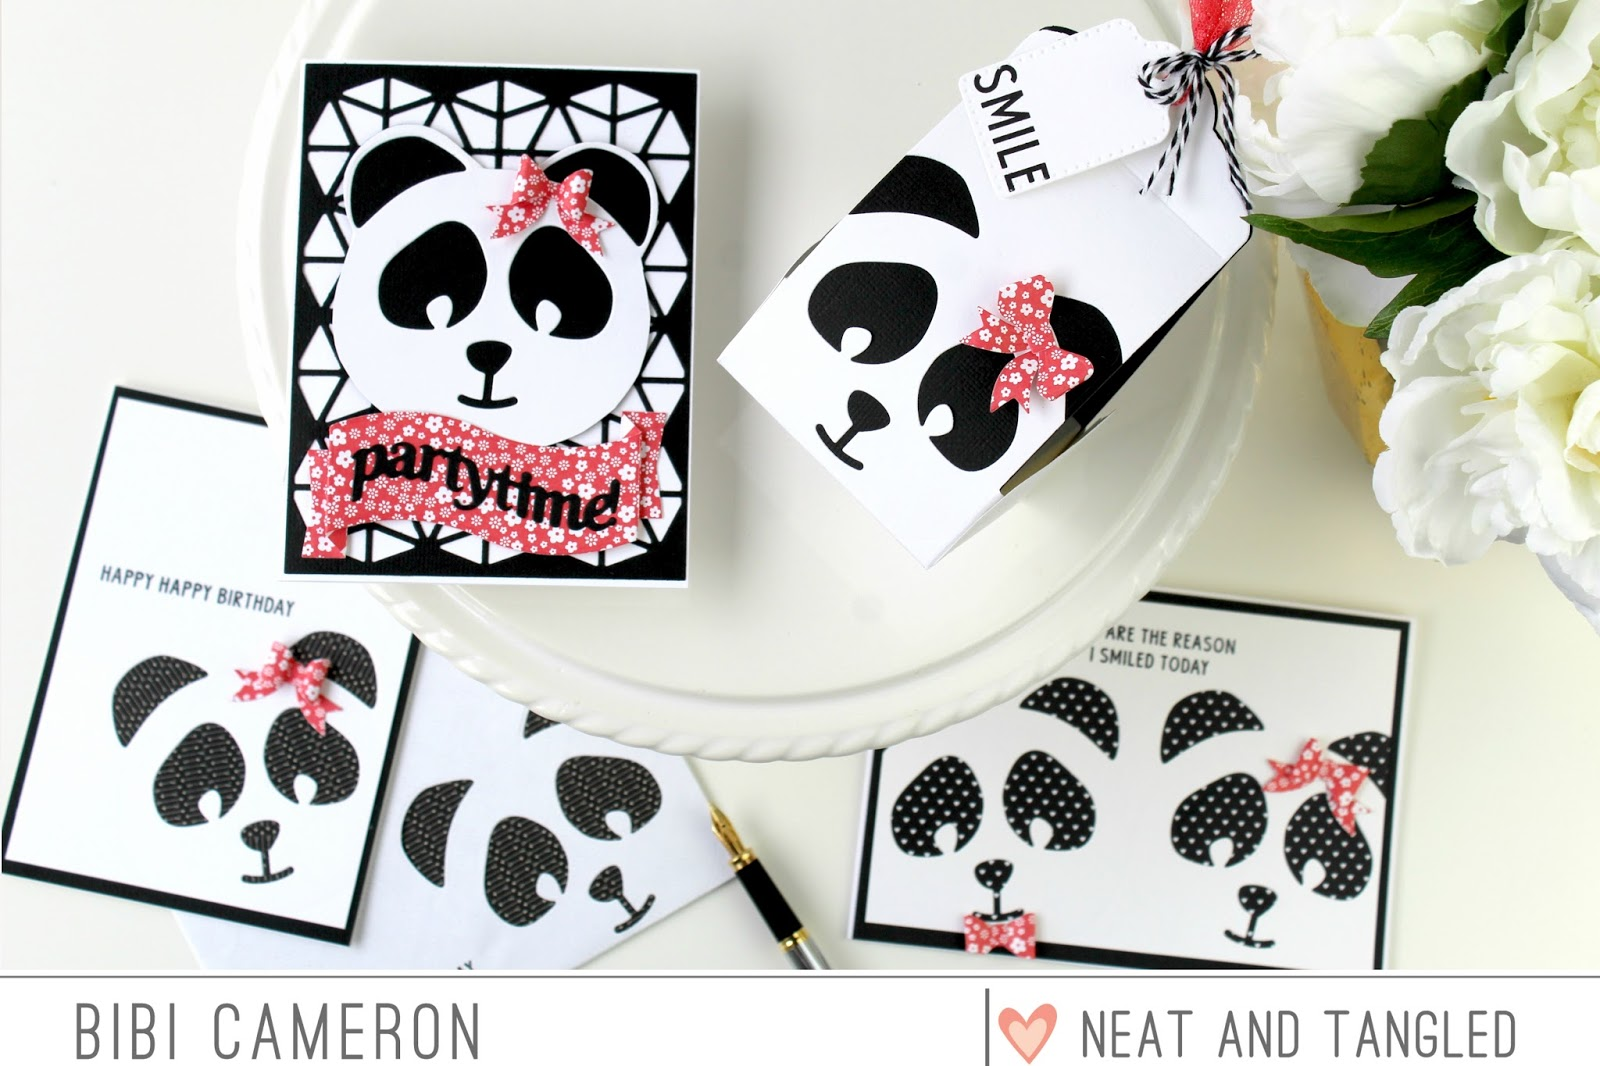 Panda Cupcake box and cards | Neat and Tangled and Tonic Studios collaboration